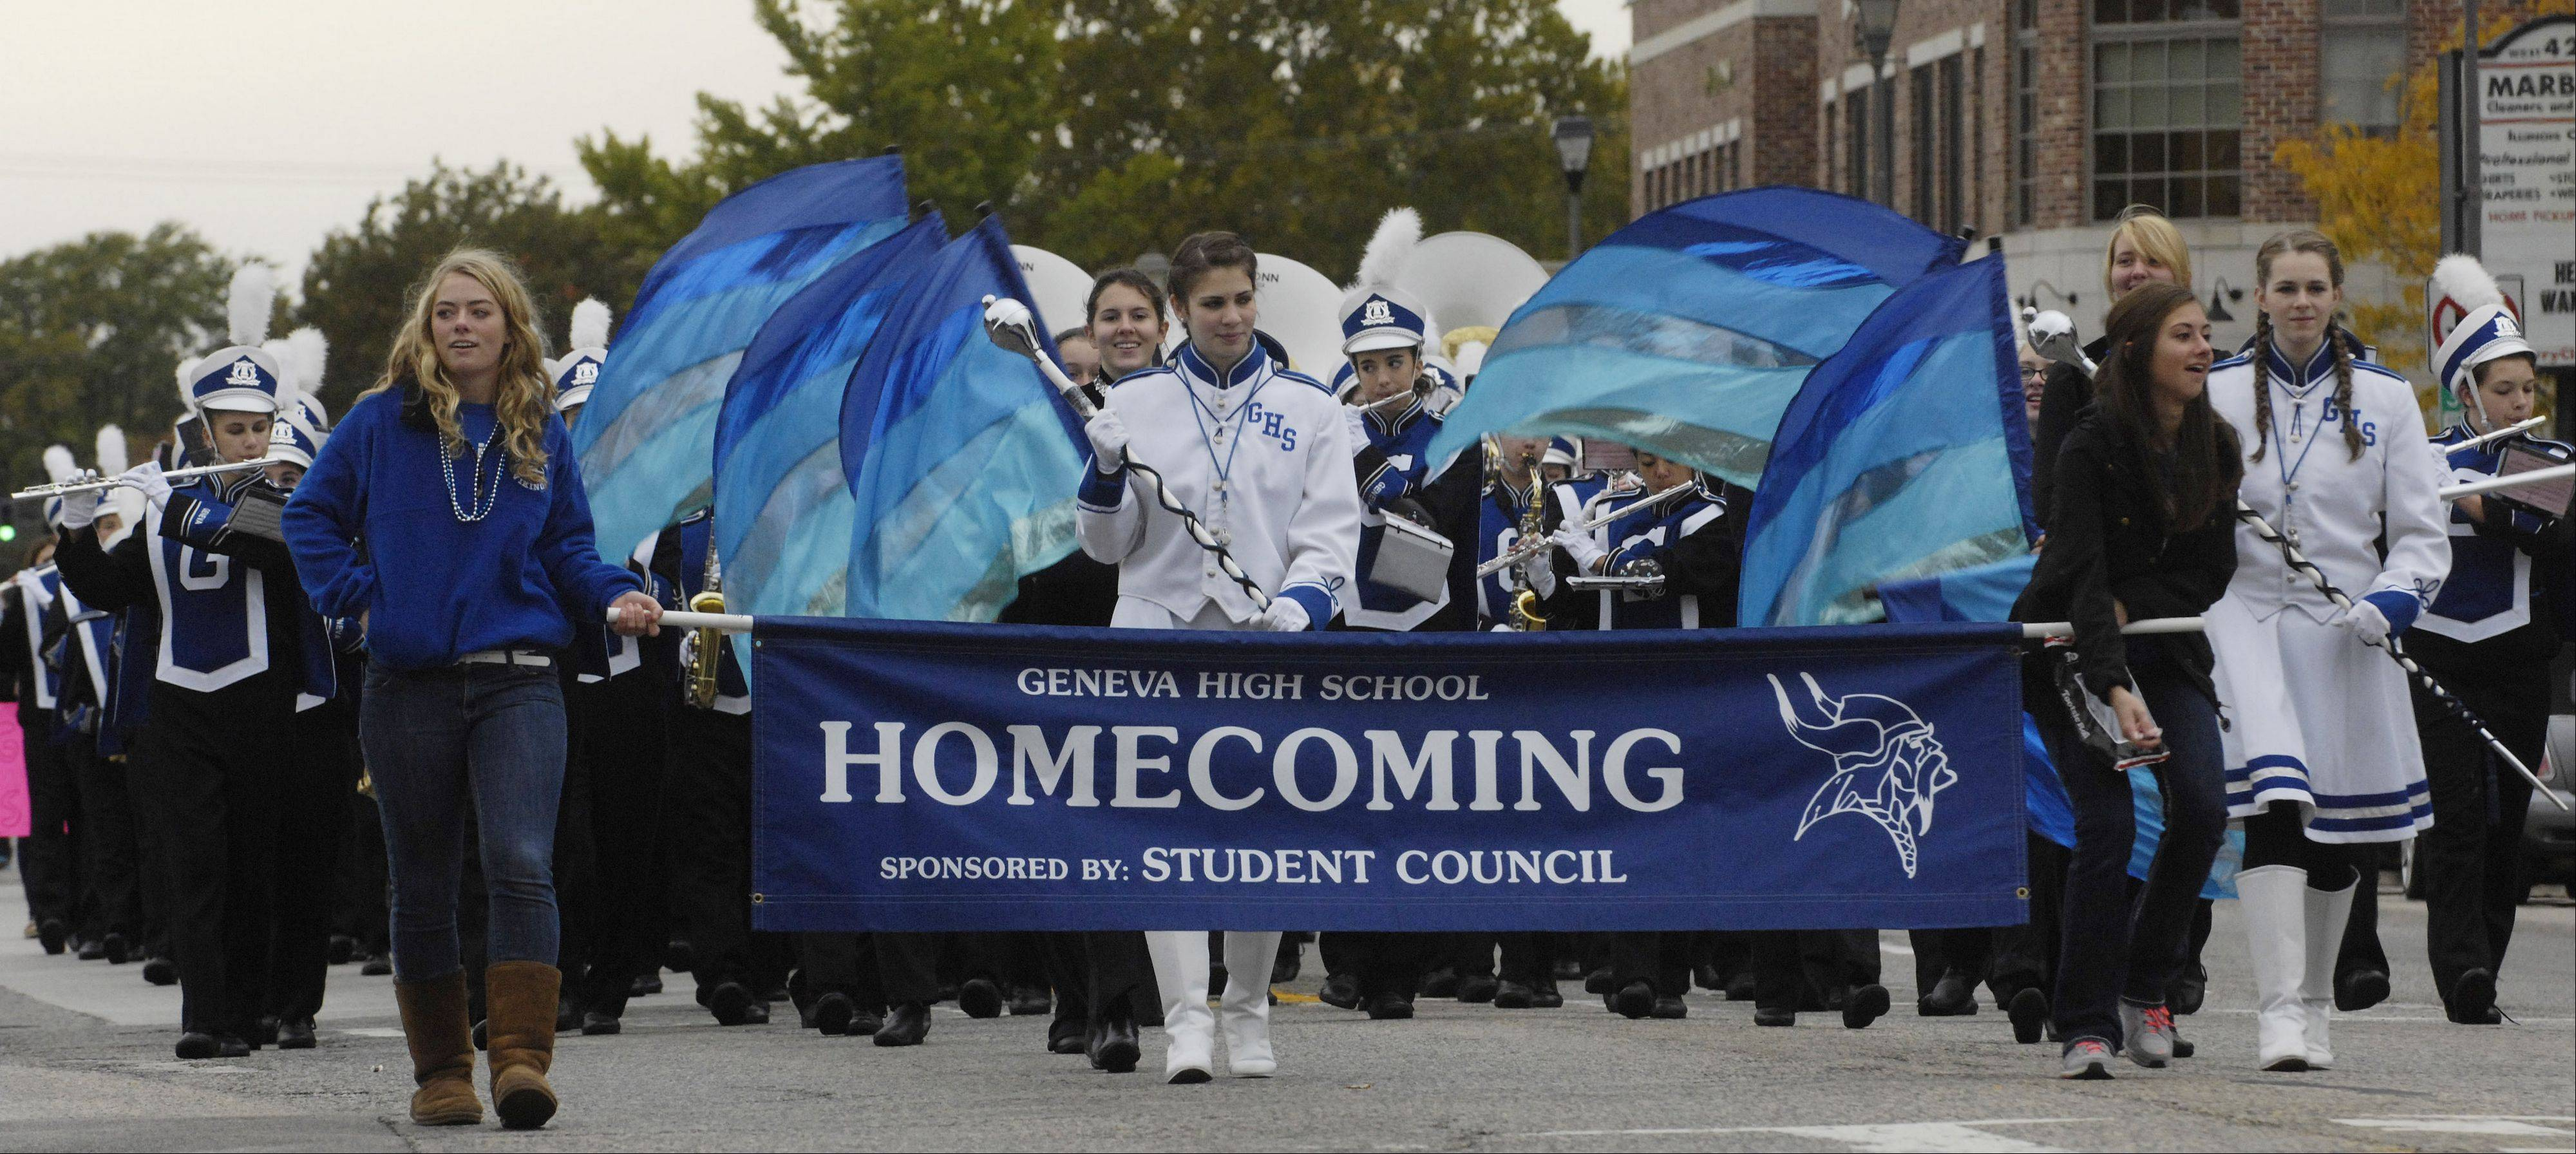 Geneva High School's Homecoming parade, led by the student council and the band, moves eastward on State Street.